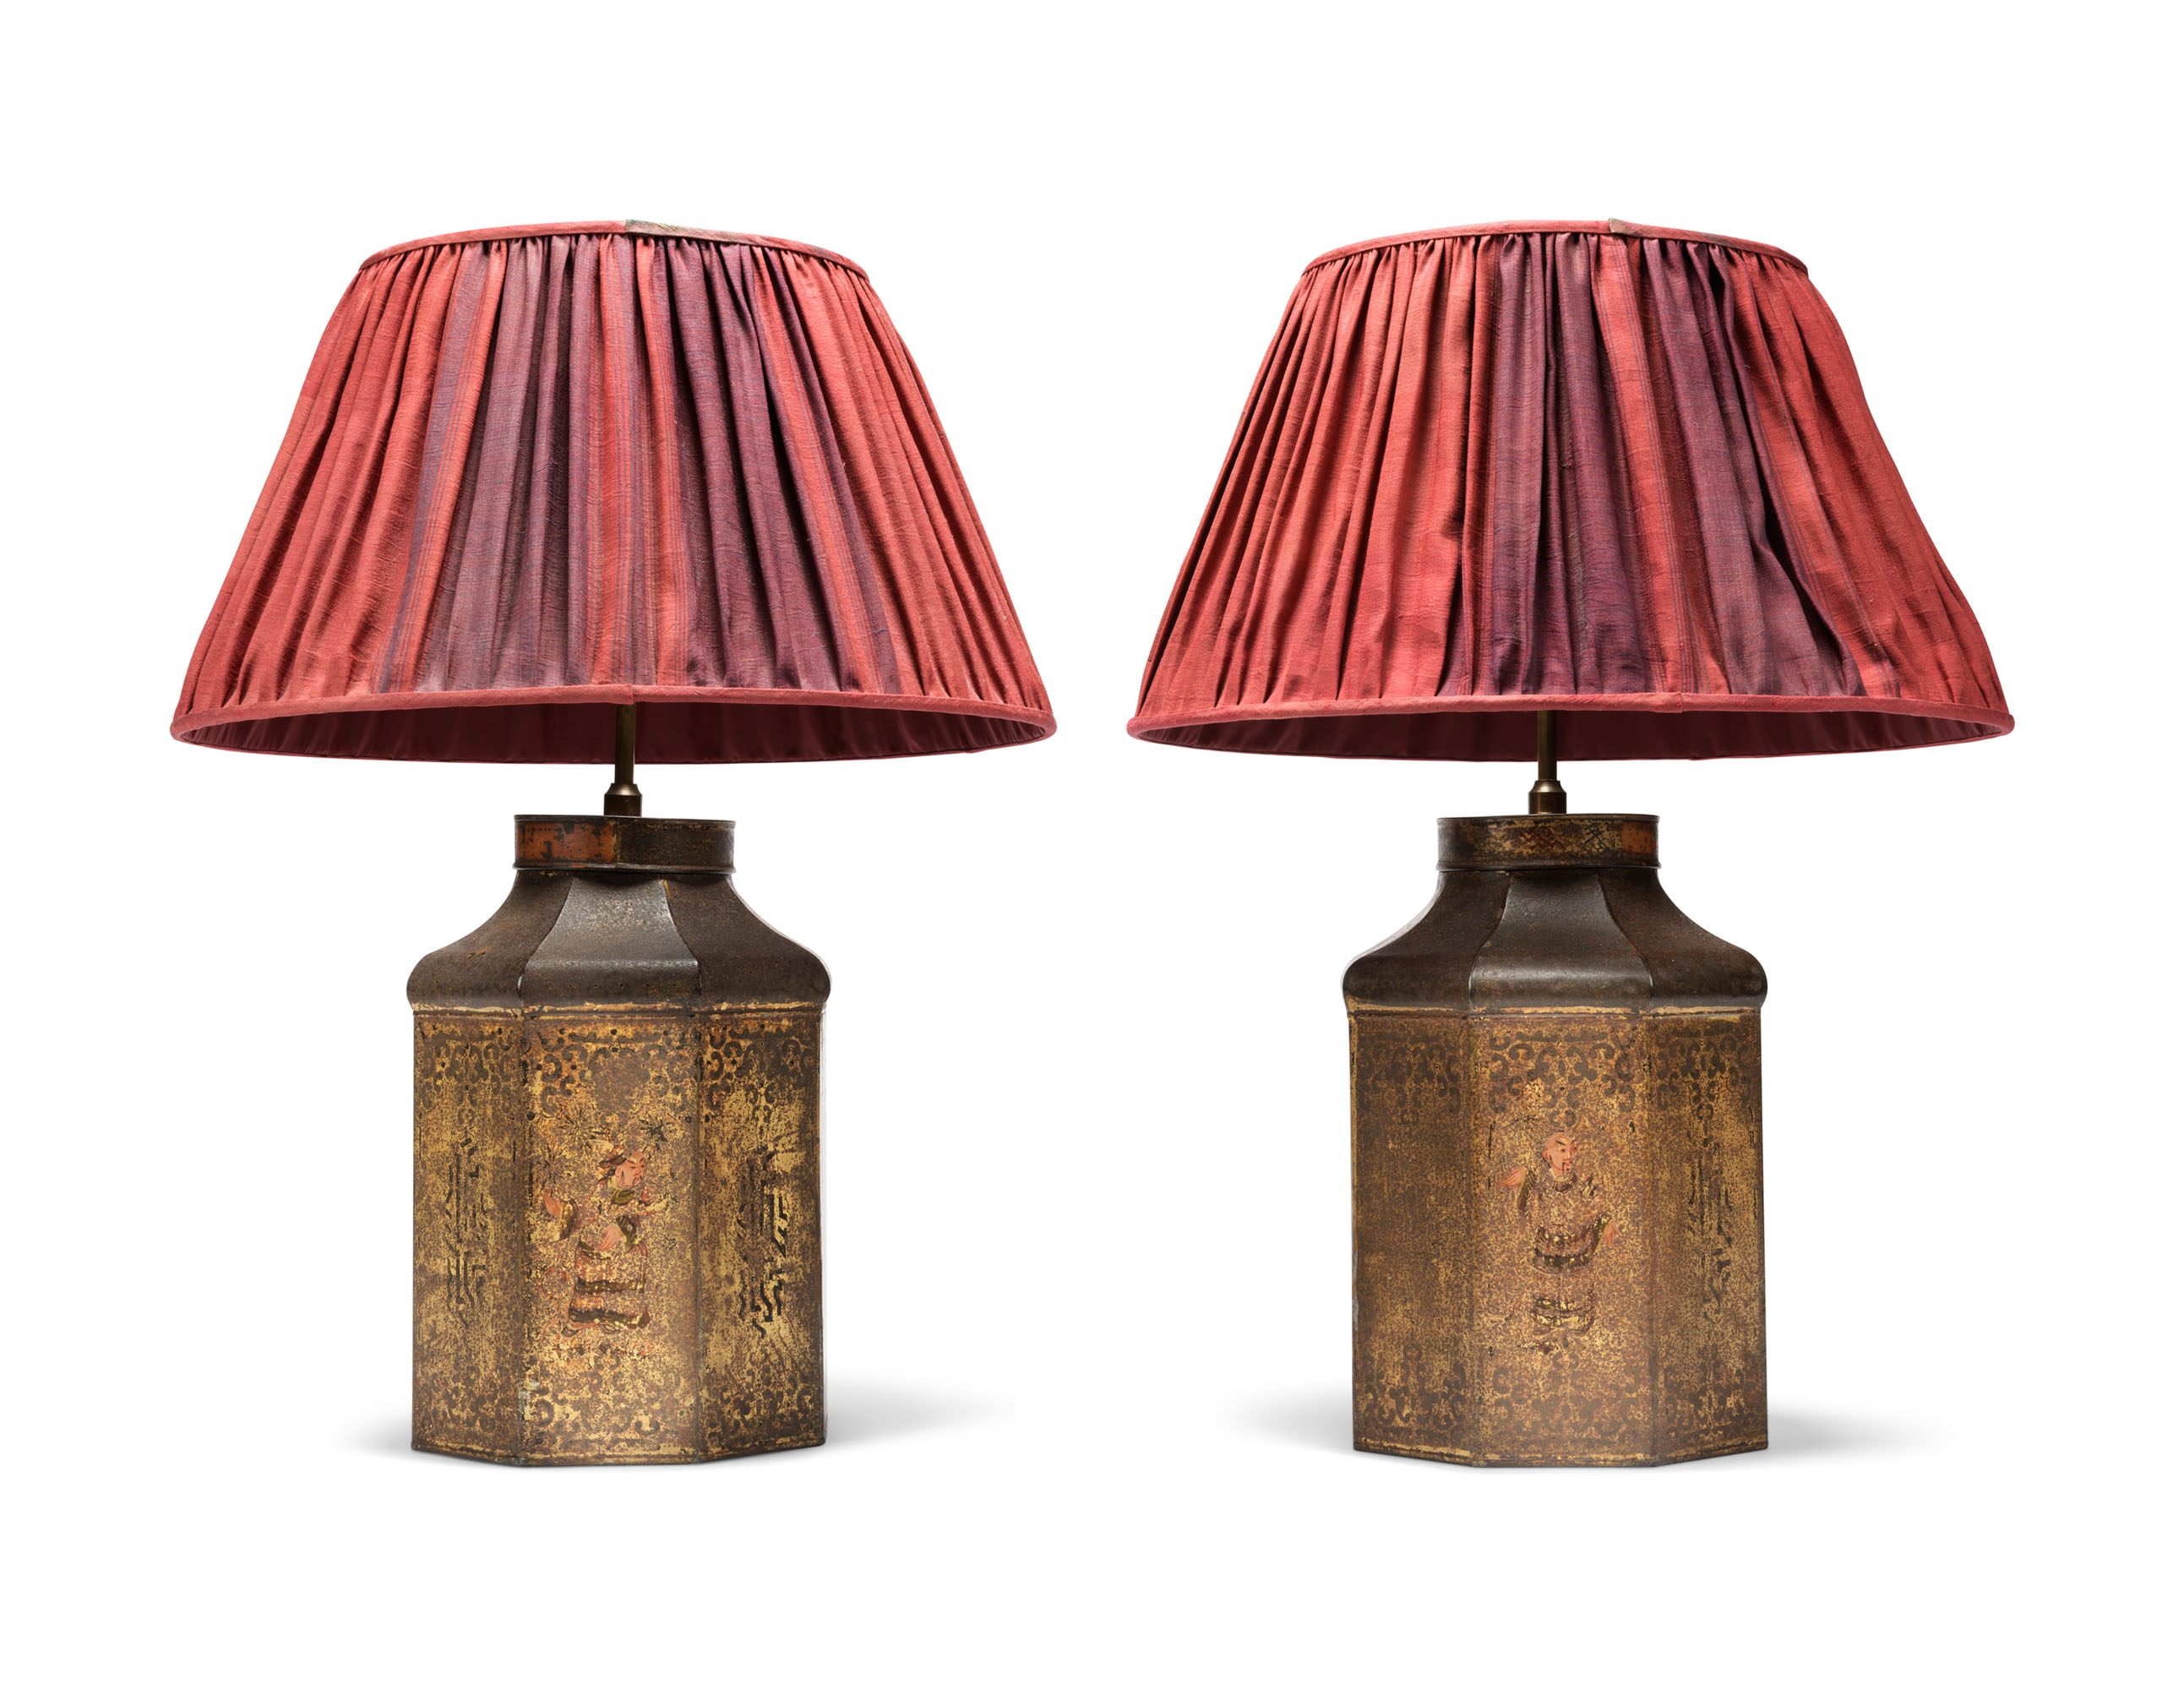 A PAIR OF LATE REGENCY JAPANNED METAL TEA CANISTER TABLE LAMPS